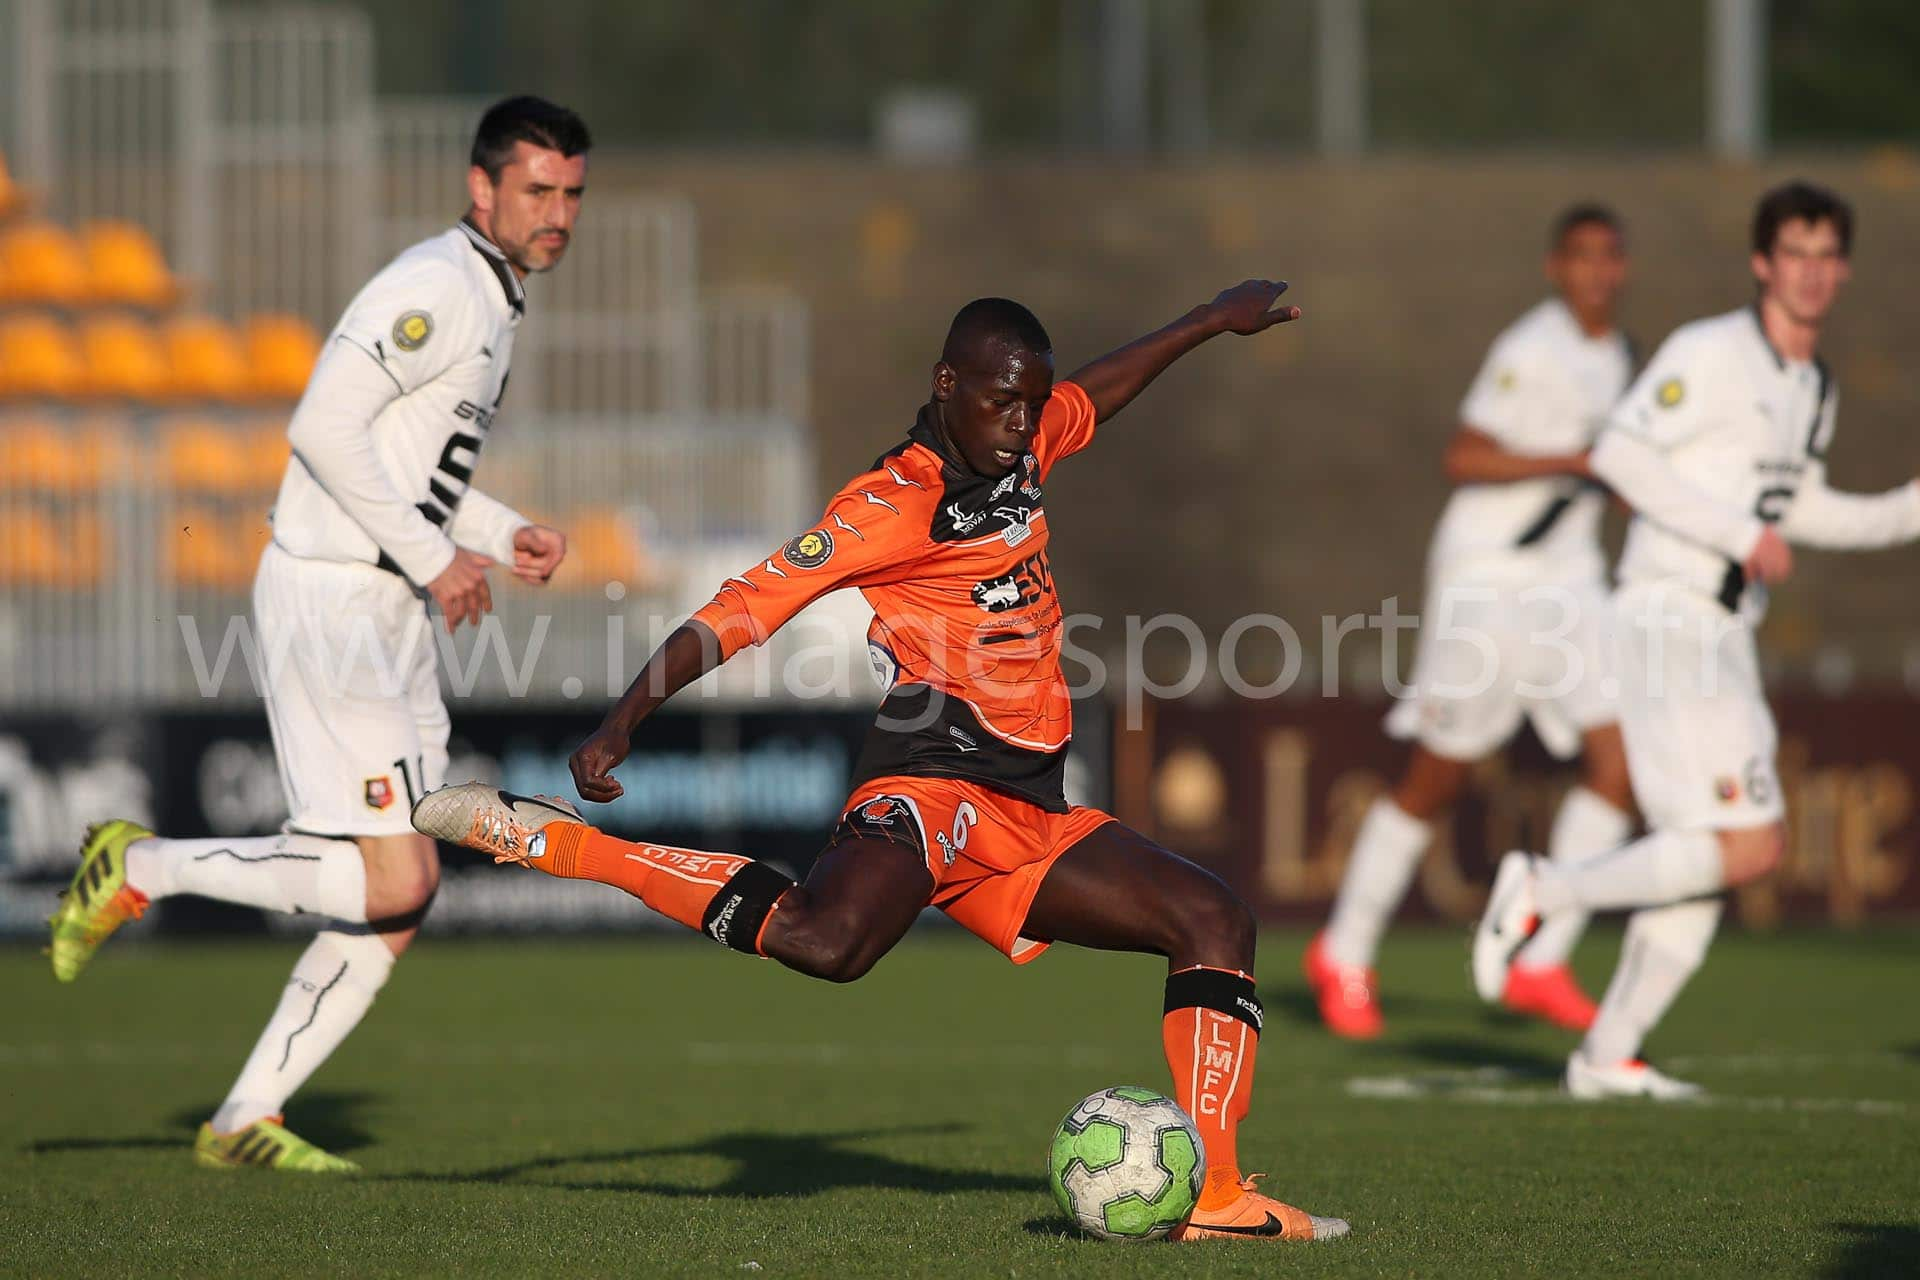 NG-CFA2-1314-J19-Laval-Rennes_2